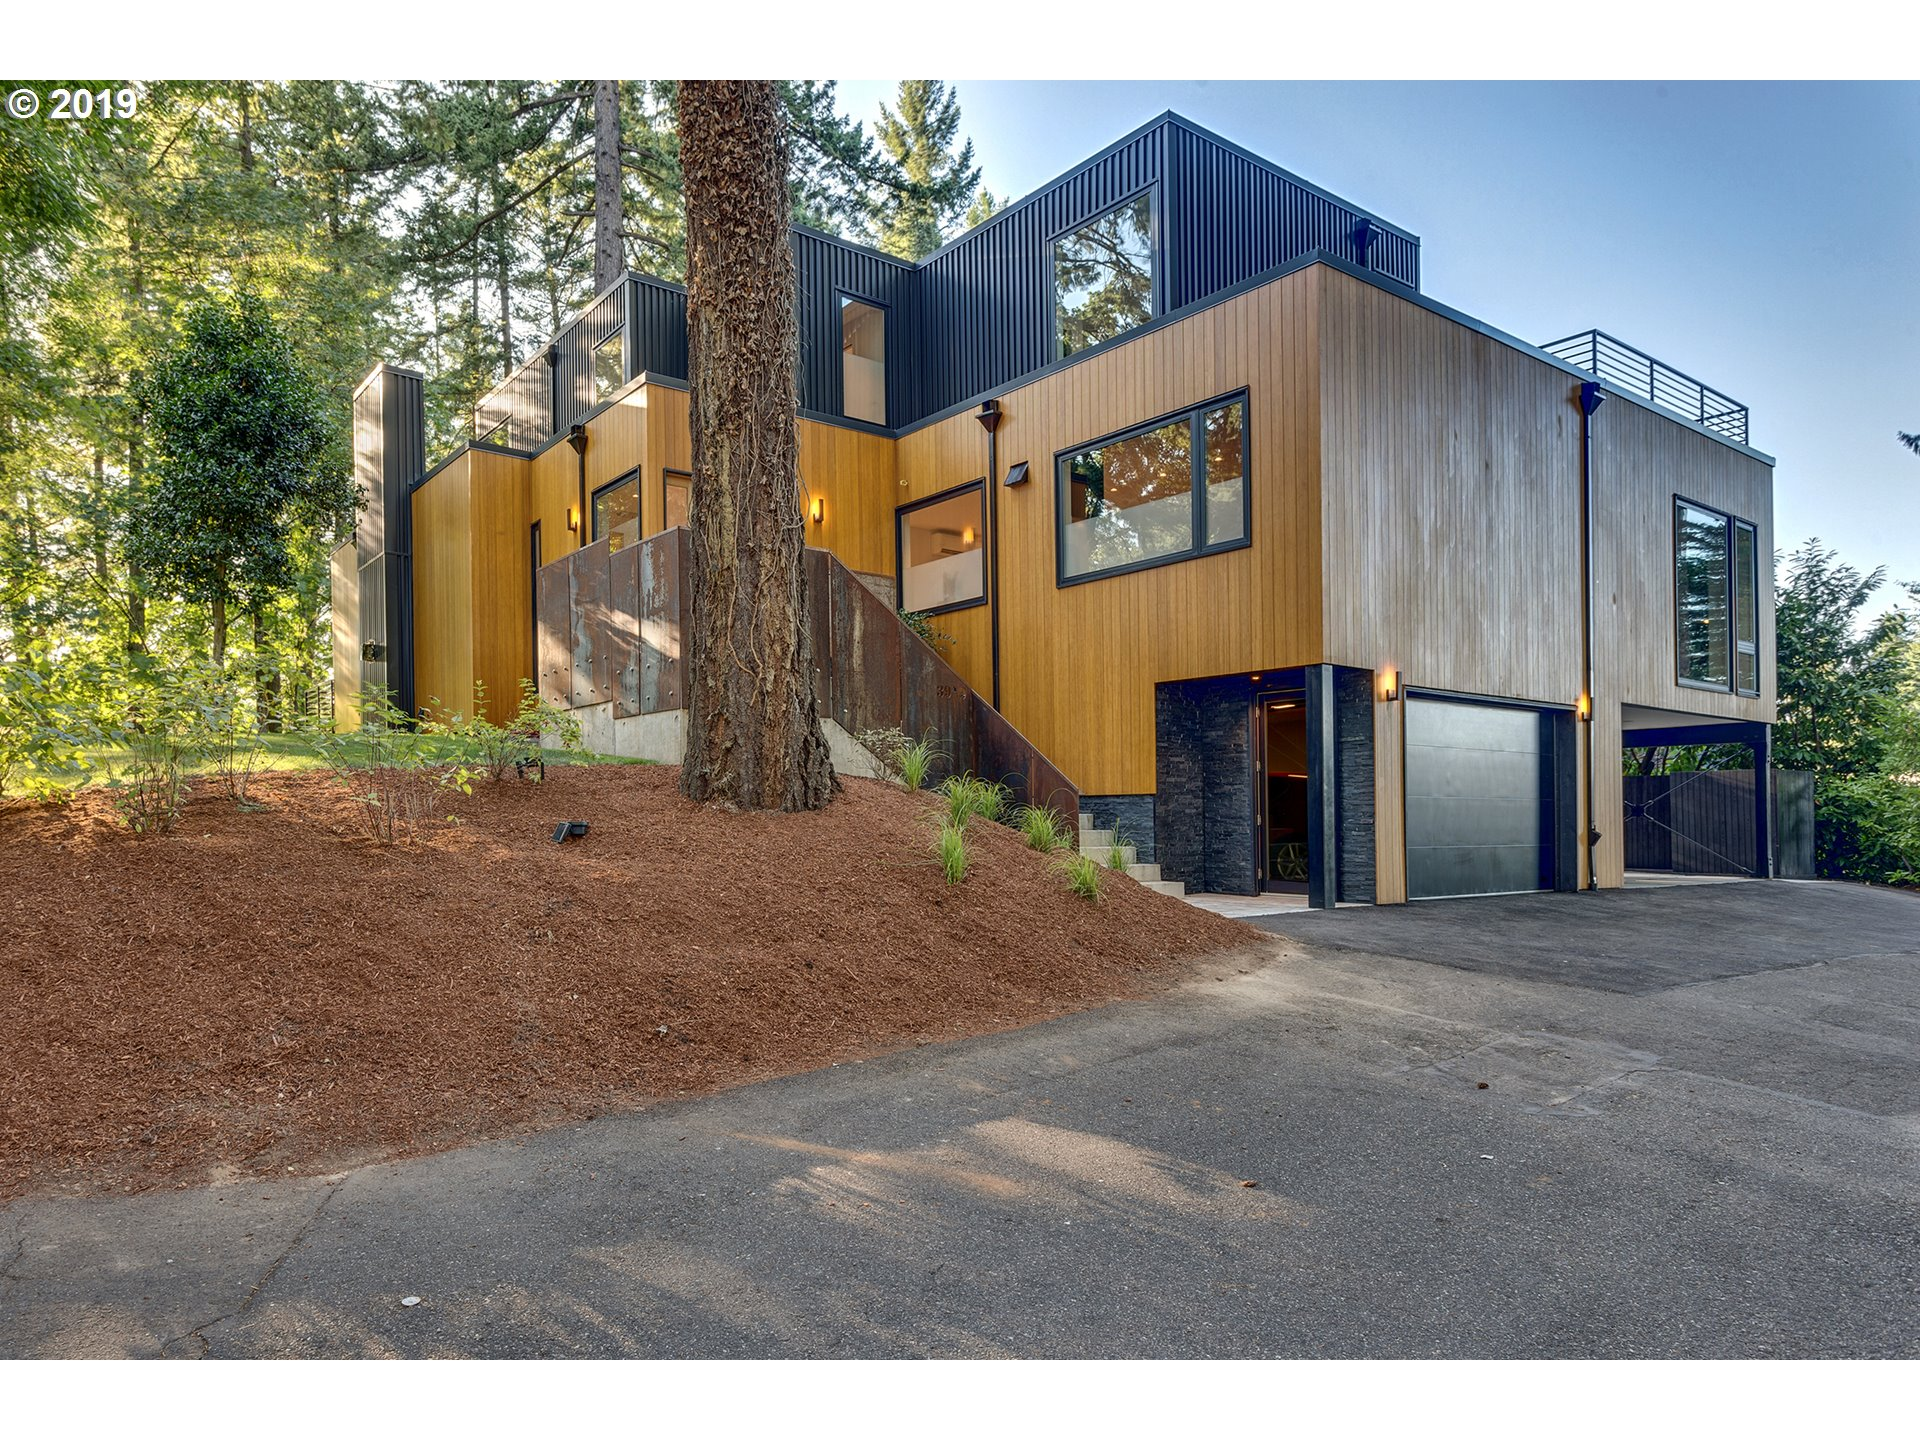 Brand new Modern Masterpiece designed & built to exacting standards by award-winning architect Walker Templeton. Located near Oswego Lake with access to 4 easements. Environmentally conscious and durable design with bamboo siding, metal accents, recycled denim insulation and gorgeous finishes.  Sleek kitchen with huge windows and 16-ft island. Open plan design - every room flooded with light. Spectacular master suite with luxurious bath